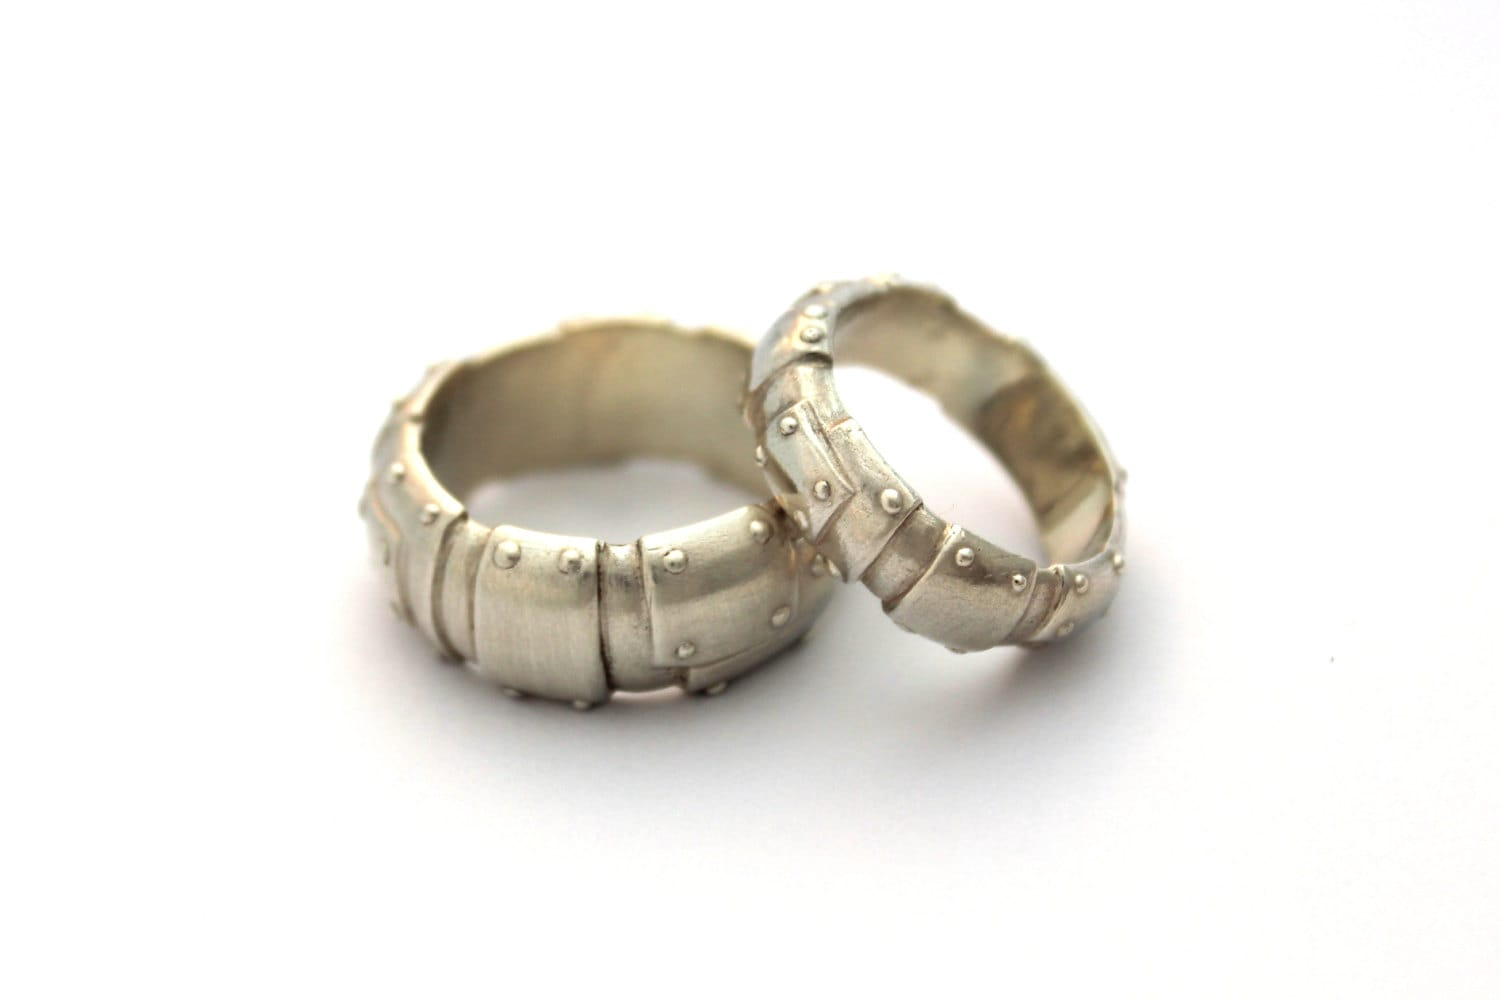 wedding rings combine the art of the jeweler the reverence of the betrothed and the beauty of love and partnership in a single resonant symbol - Coolest Wedding Rings